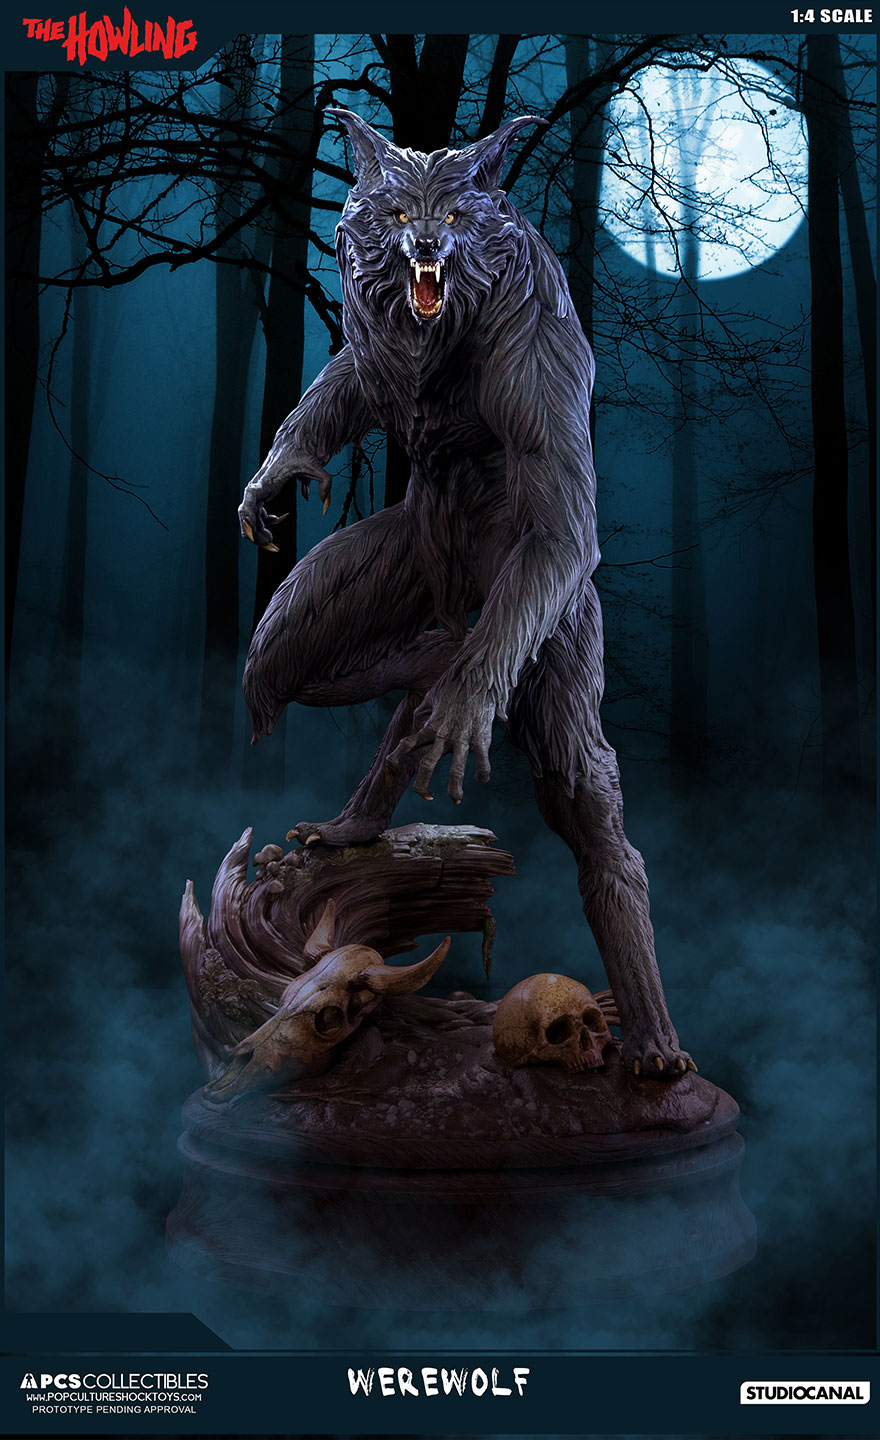 Pop Culture Shock THE HOWLING 1:4 Statue – NEW IMAGES ...